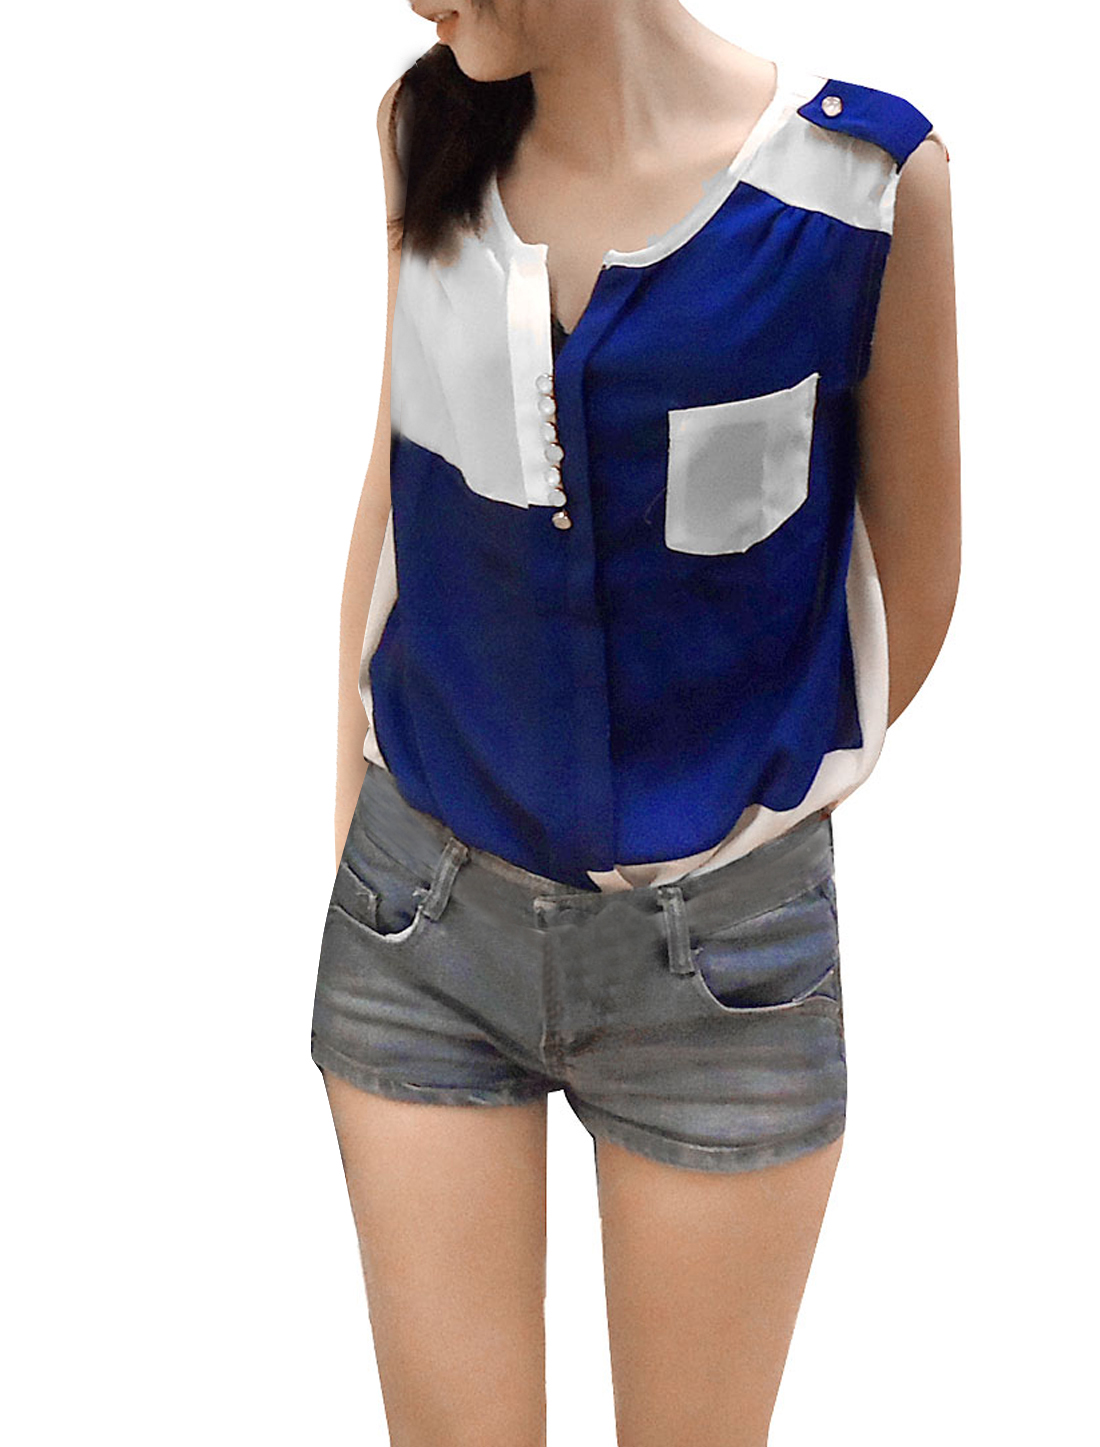 Round Hem Blue White Spliced Chiffon Tank Blouse XS + Slim Waist Belt for Woman